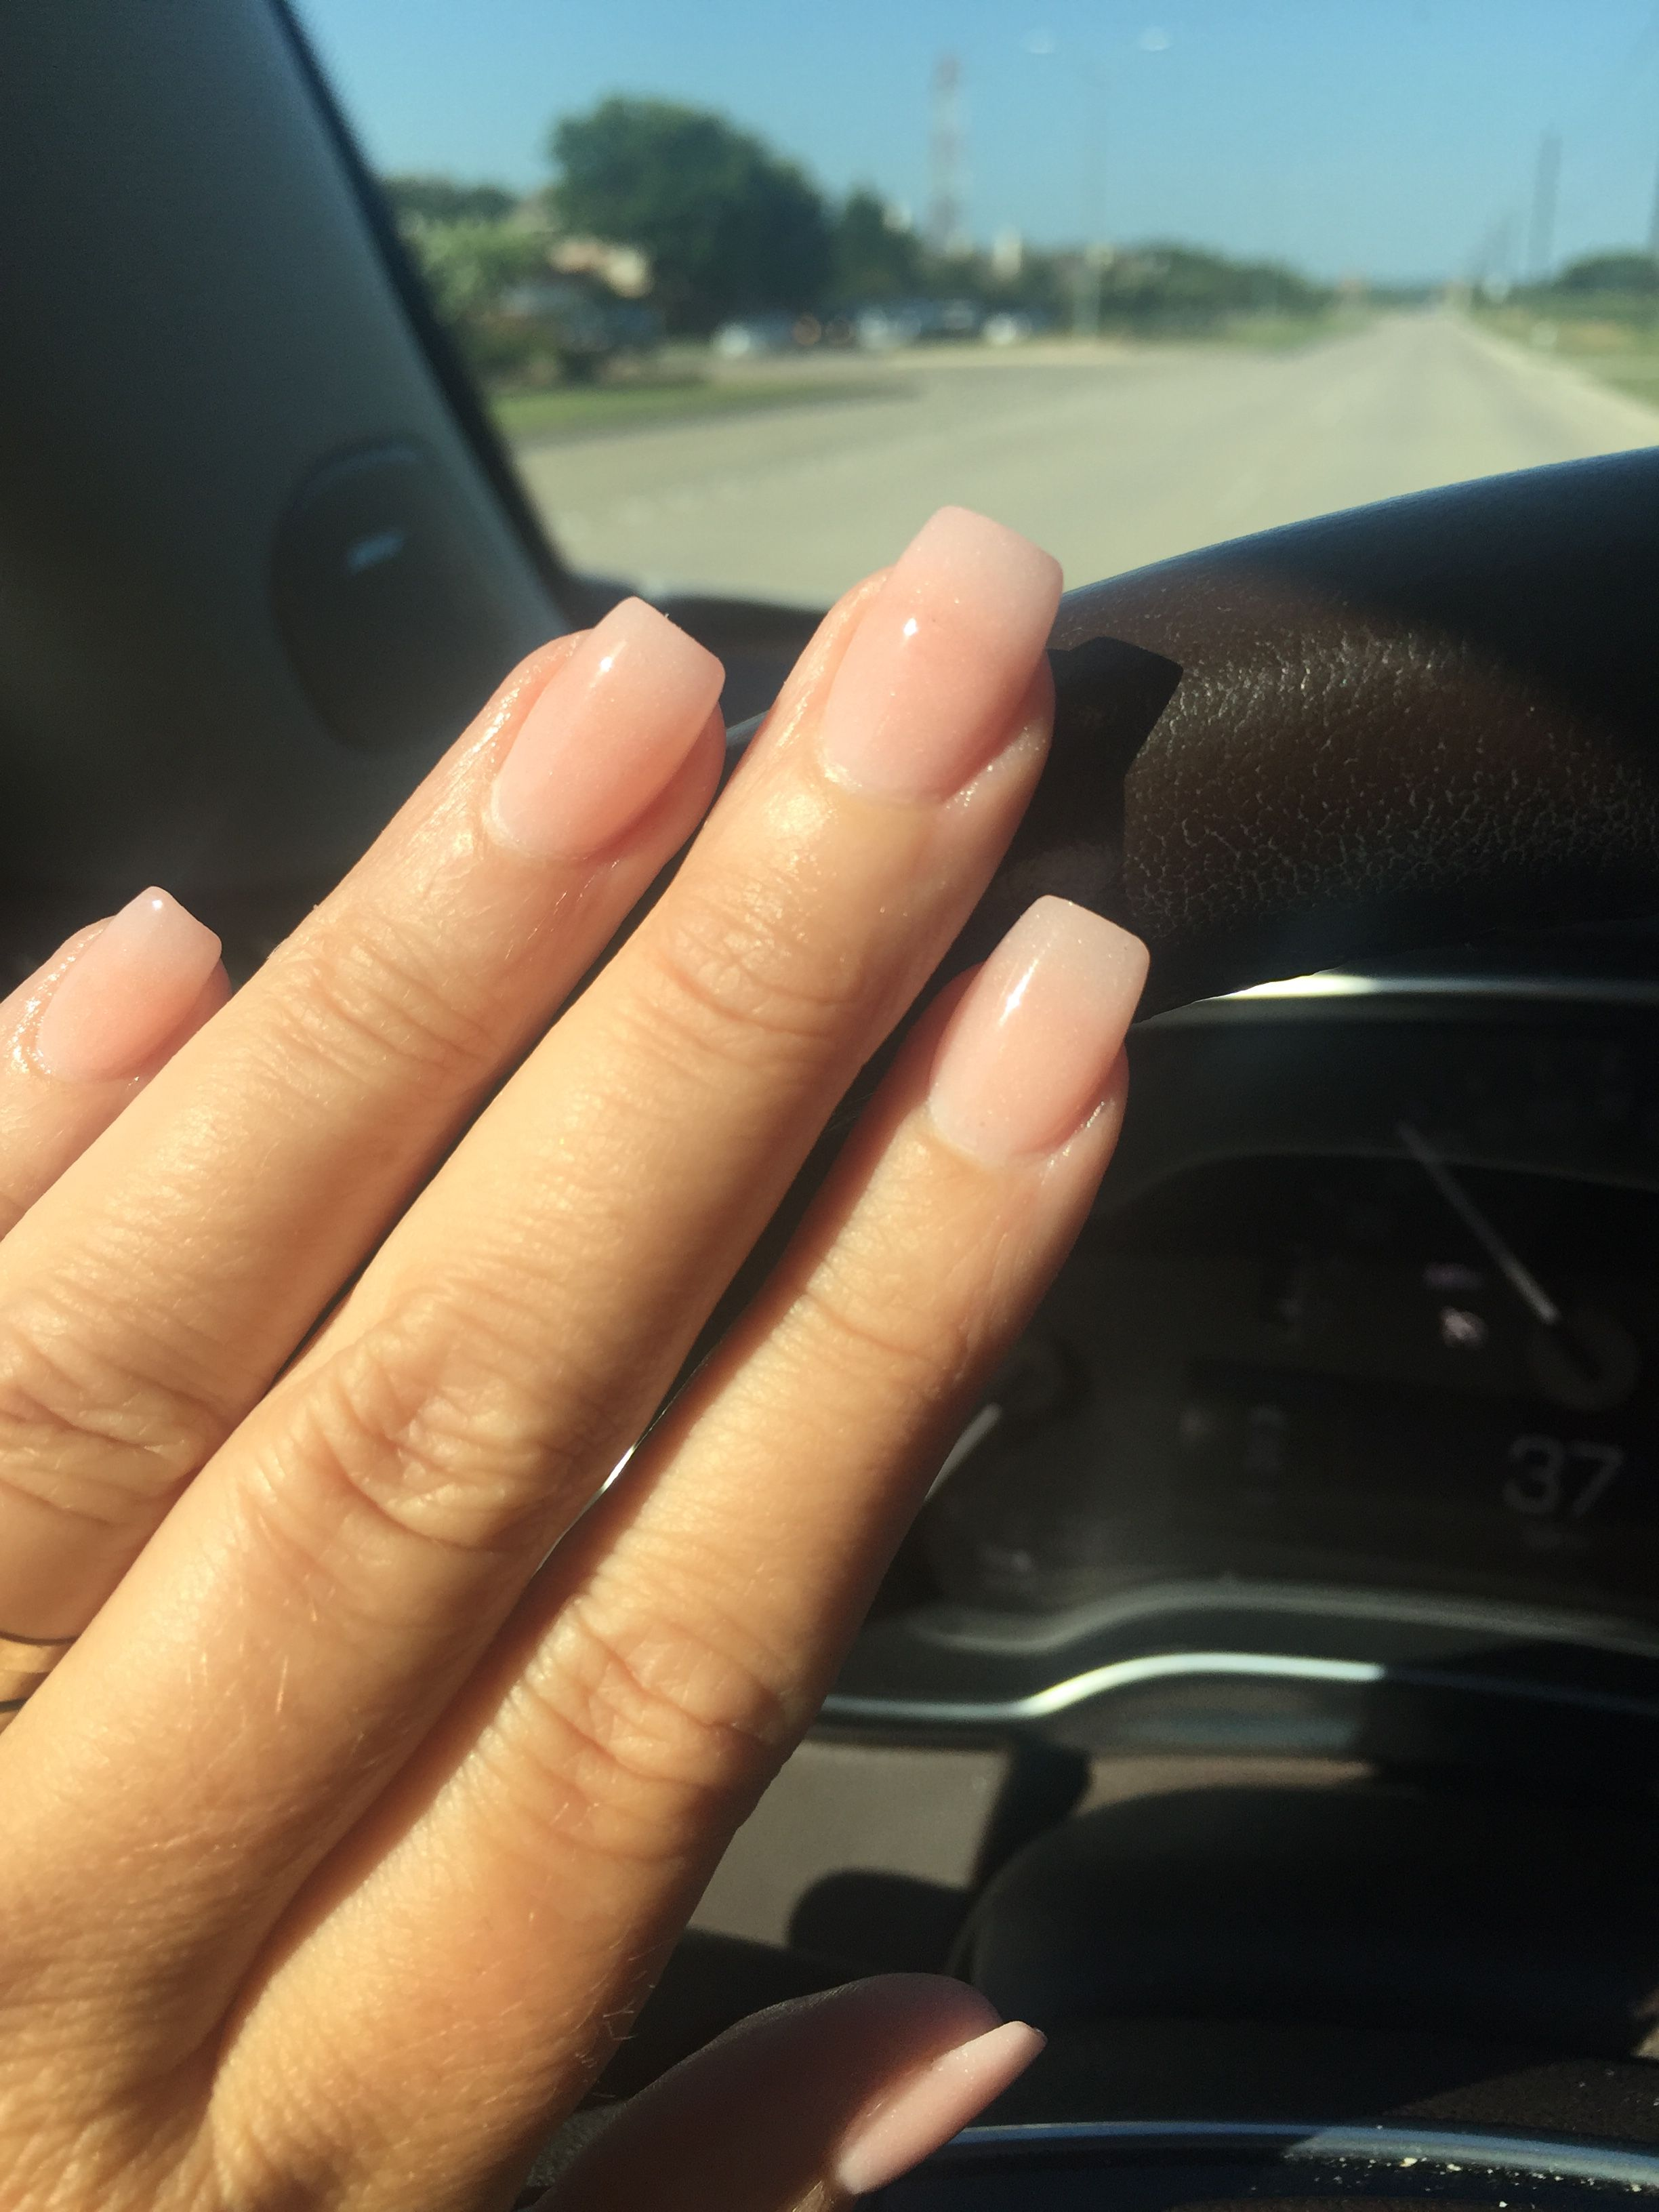 Natural Nails Powder Dipped Color 207 Coffin Shape Rounded Dipped Nails Powder Nails Natural Nails